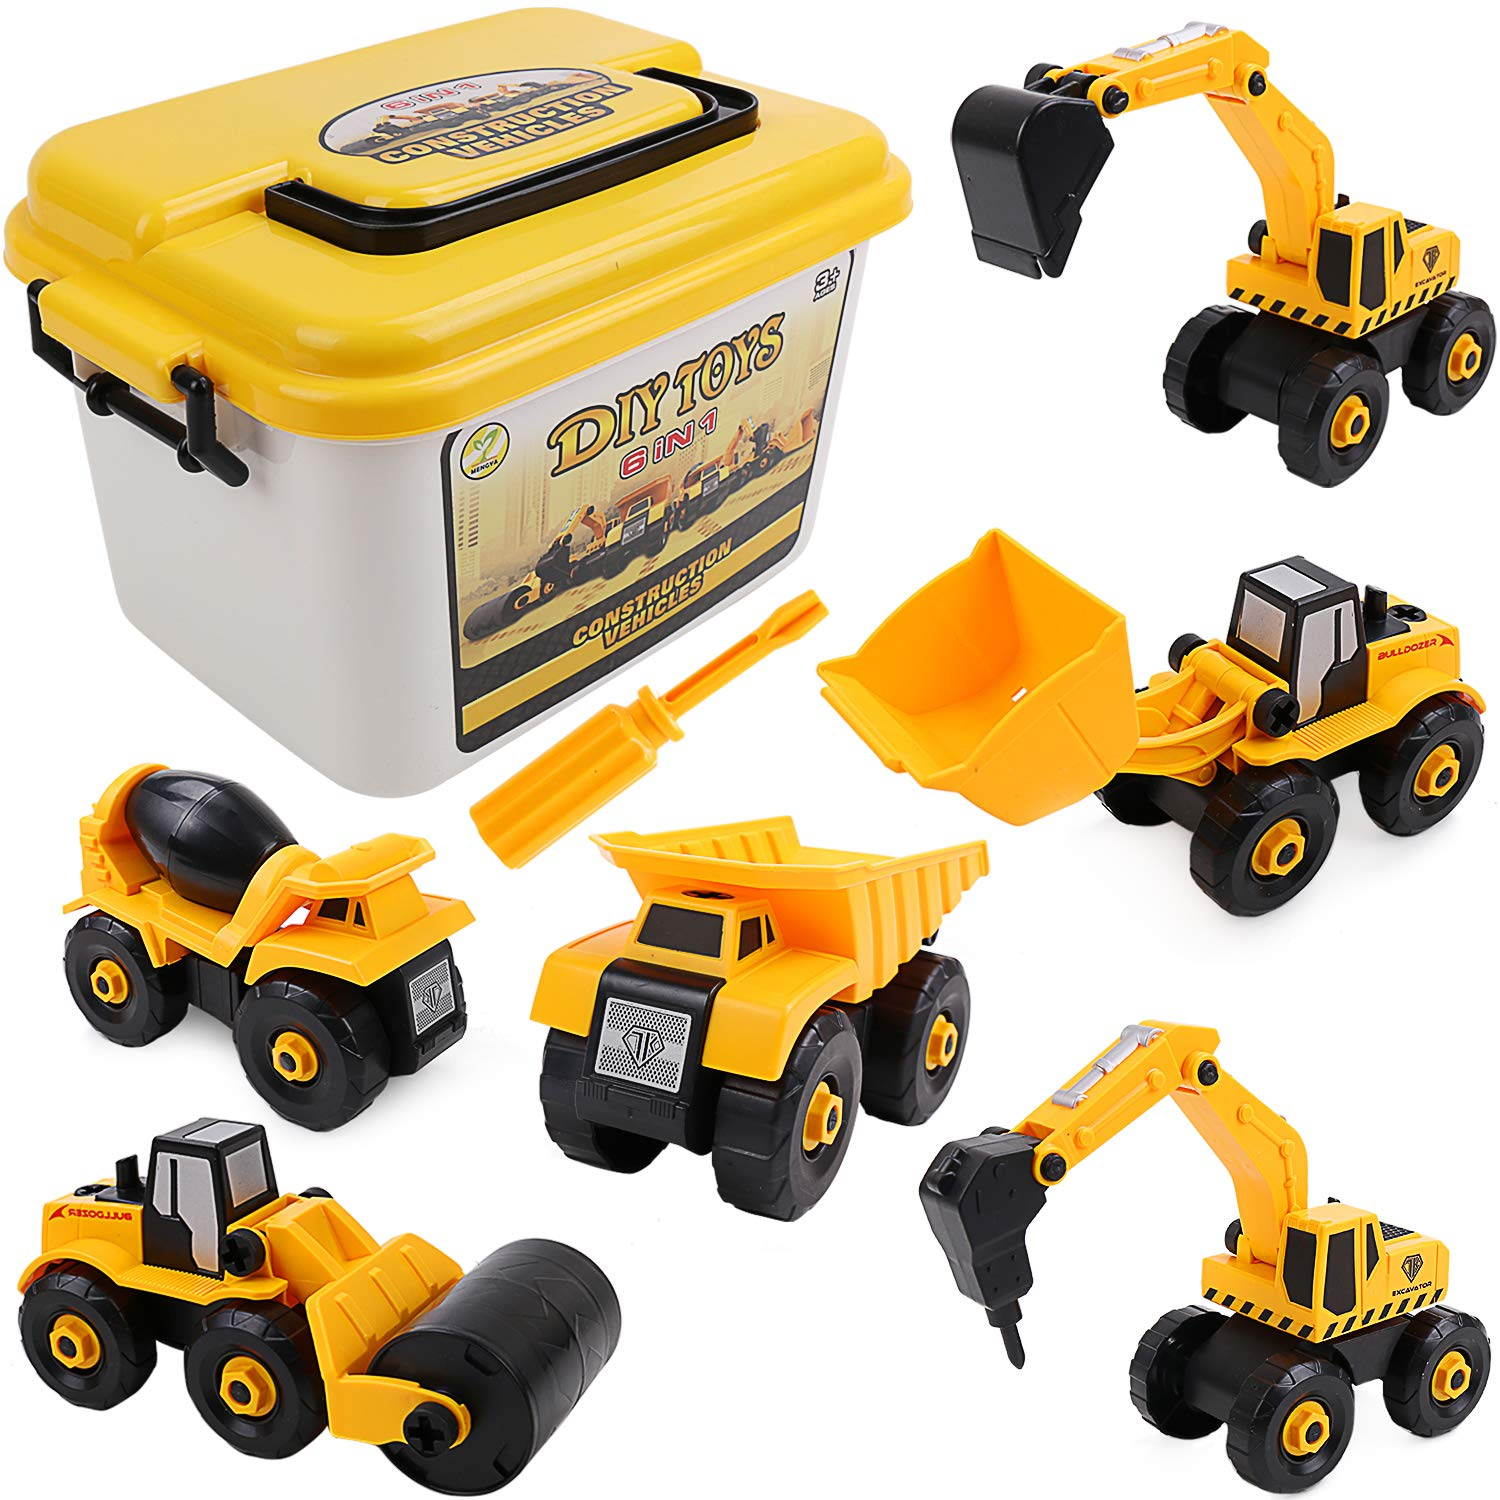 Jellydog Toy Take Apart Toys, 6 Set Construction Take Apart Trucks,Excavator, Bulldozer, Drilling, Road Roller, Dump, Cement Truck,STEM Learning Toys for Toddlers Age 3+